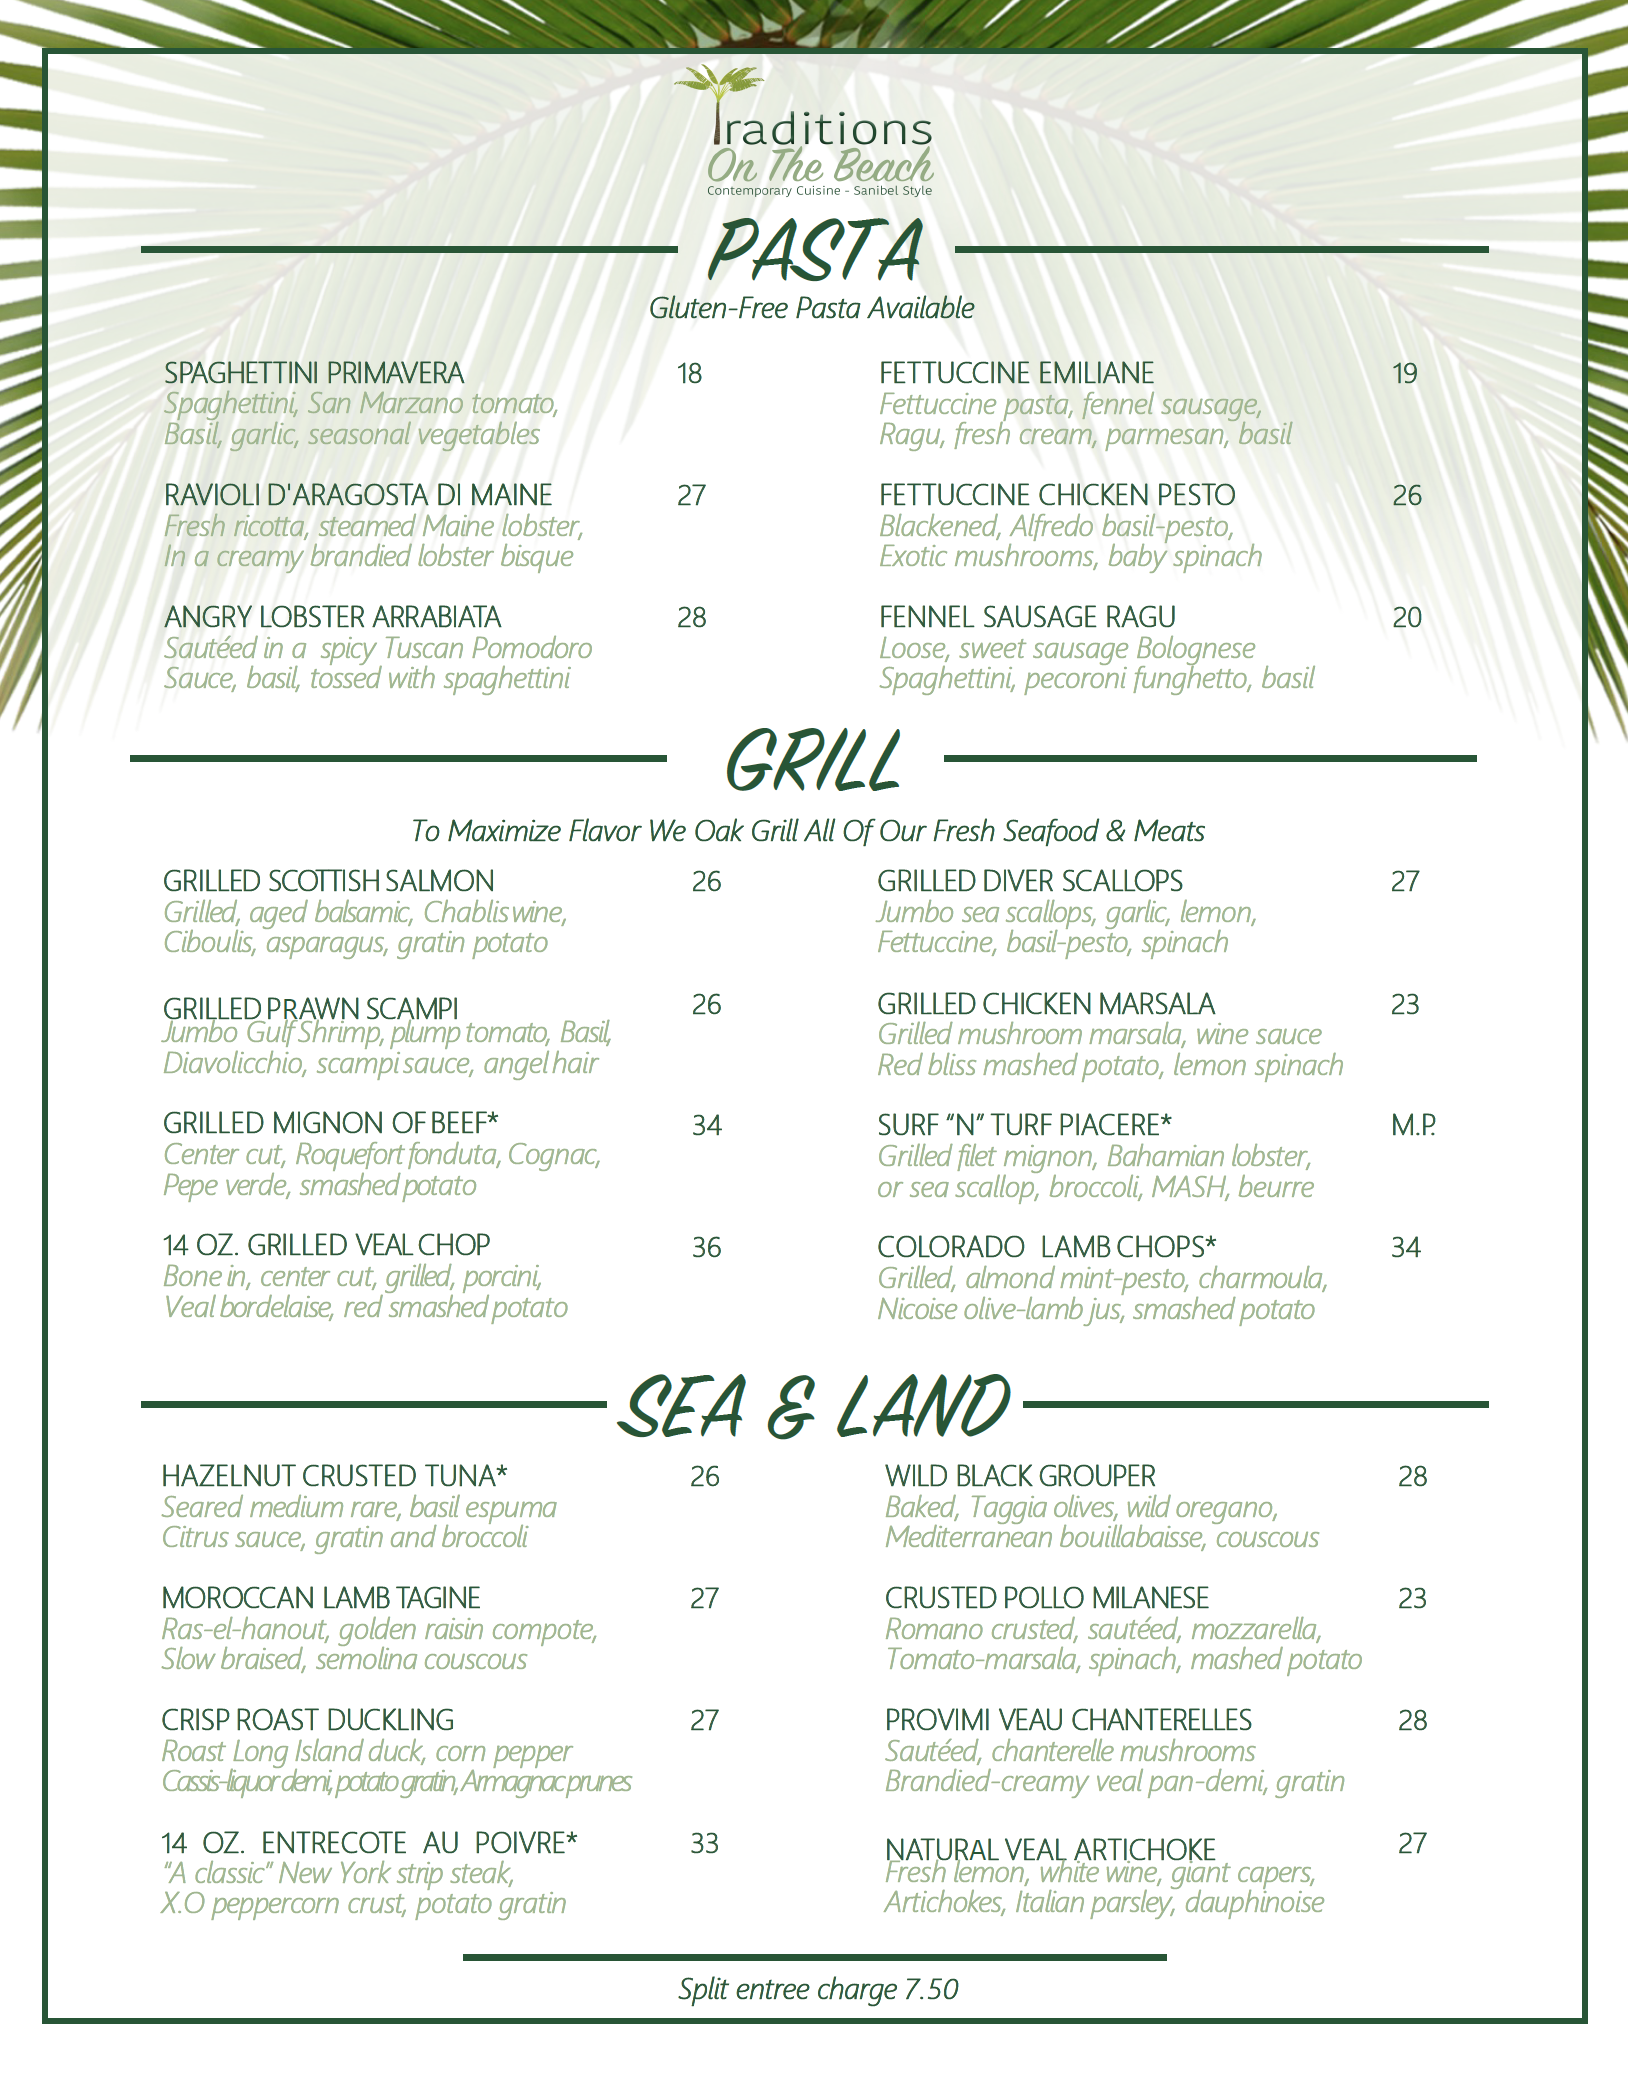 sanibel island restaurants - traditions on the beach dinner menu - page one